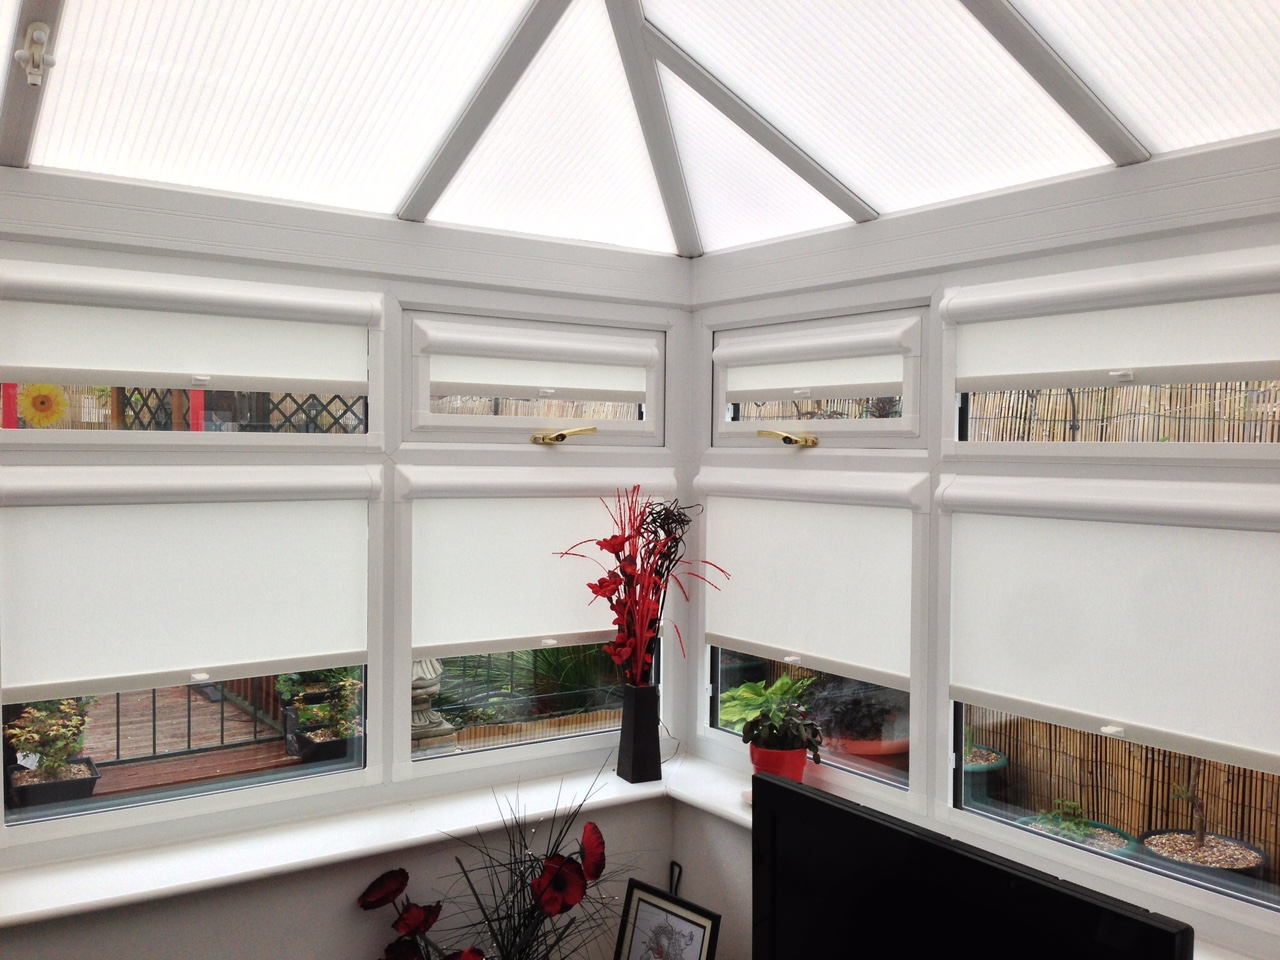 Roller Blinds Made To Measure Rollers For Windows Doors